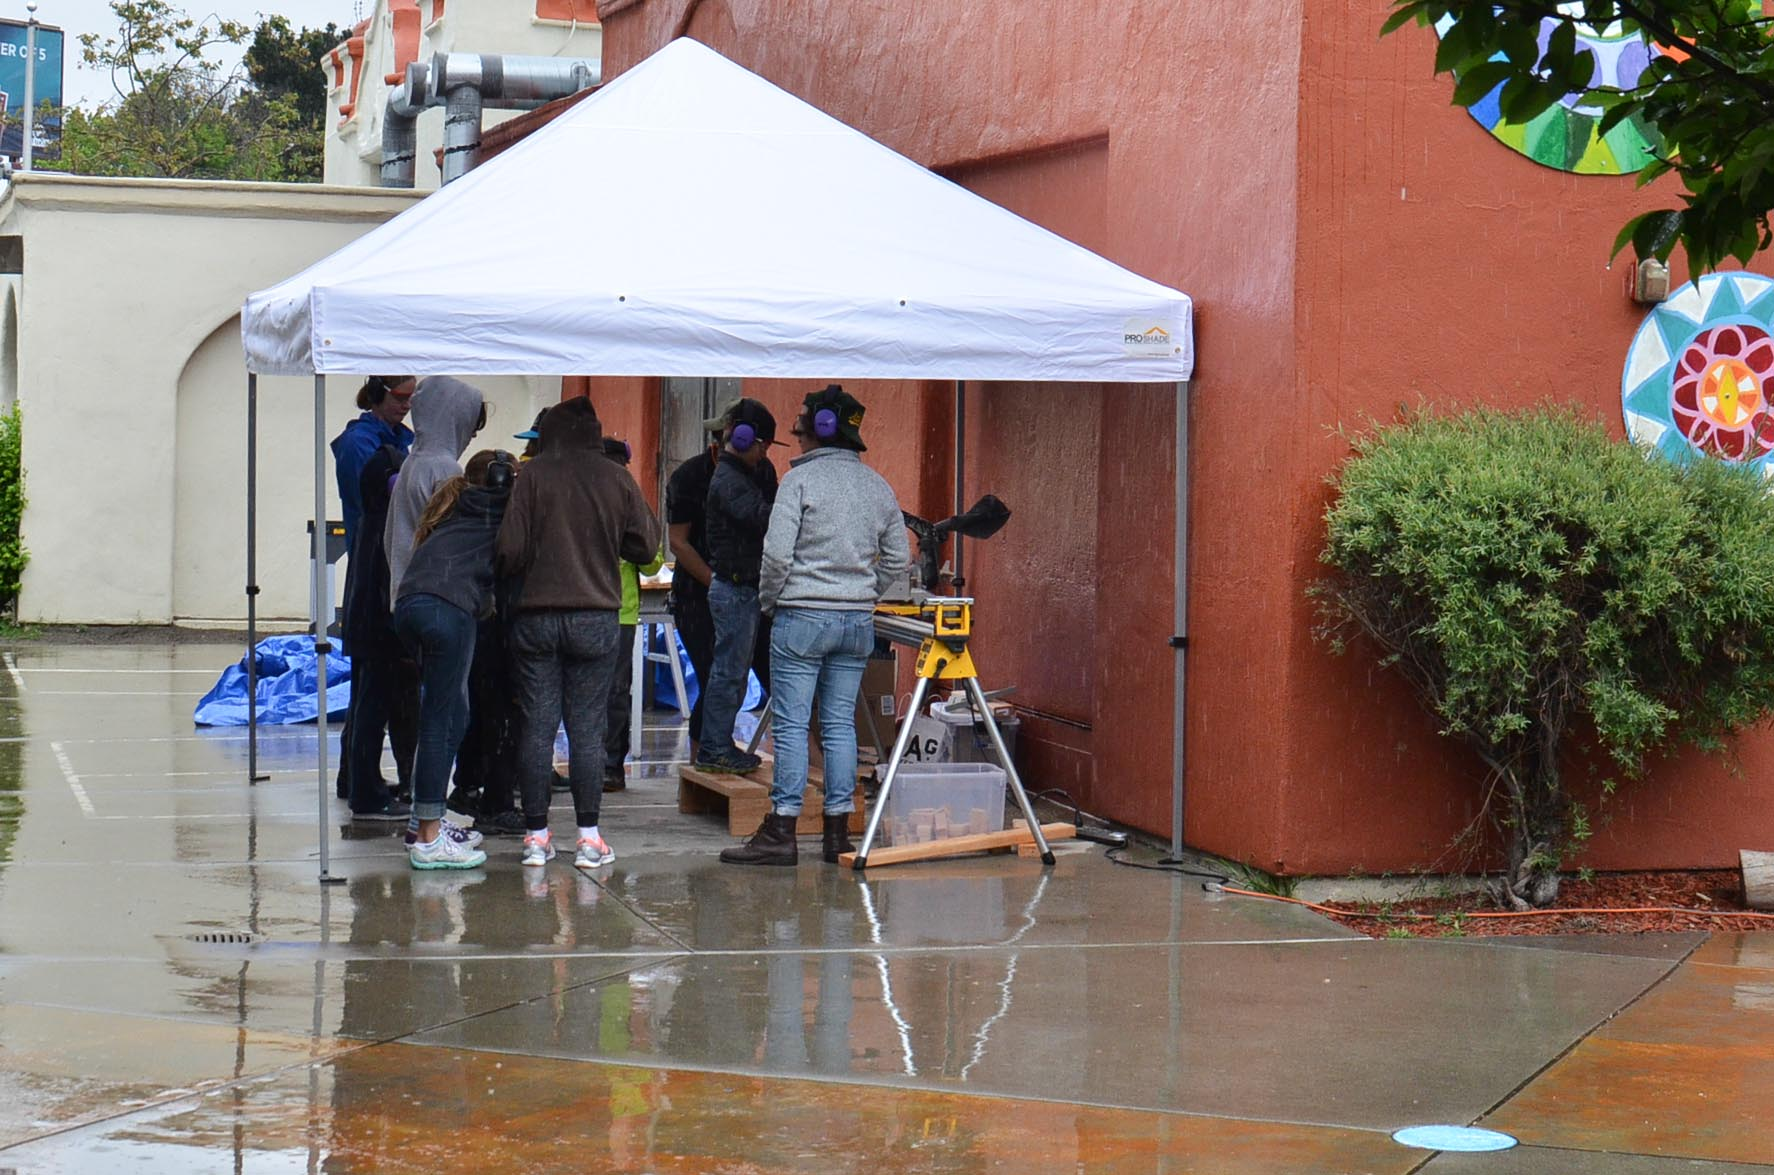 The team circles up tight to avoid the rain while learning about making a ready call.